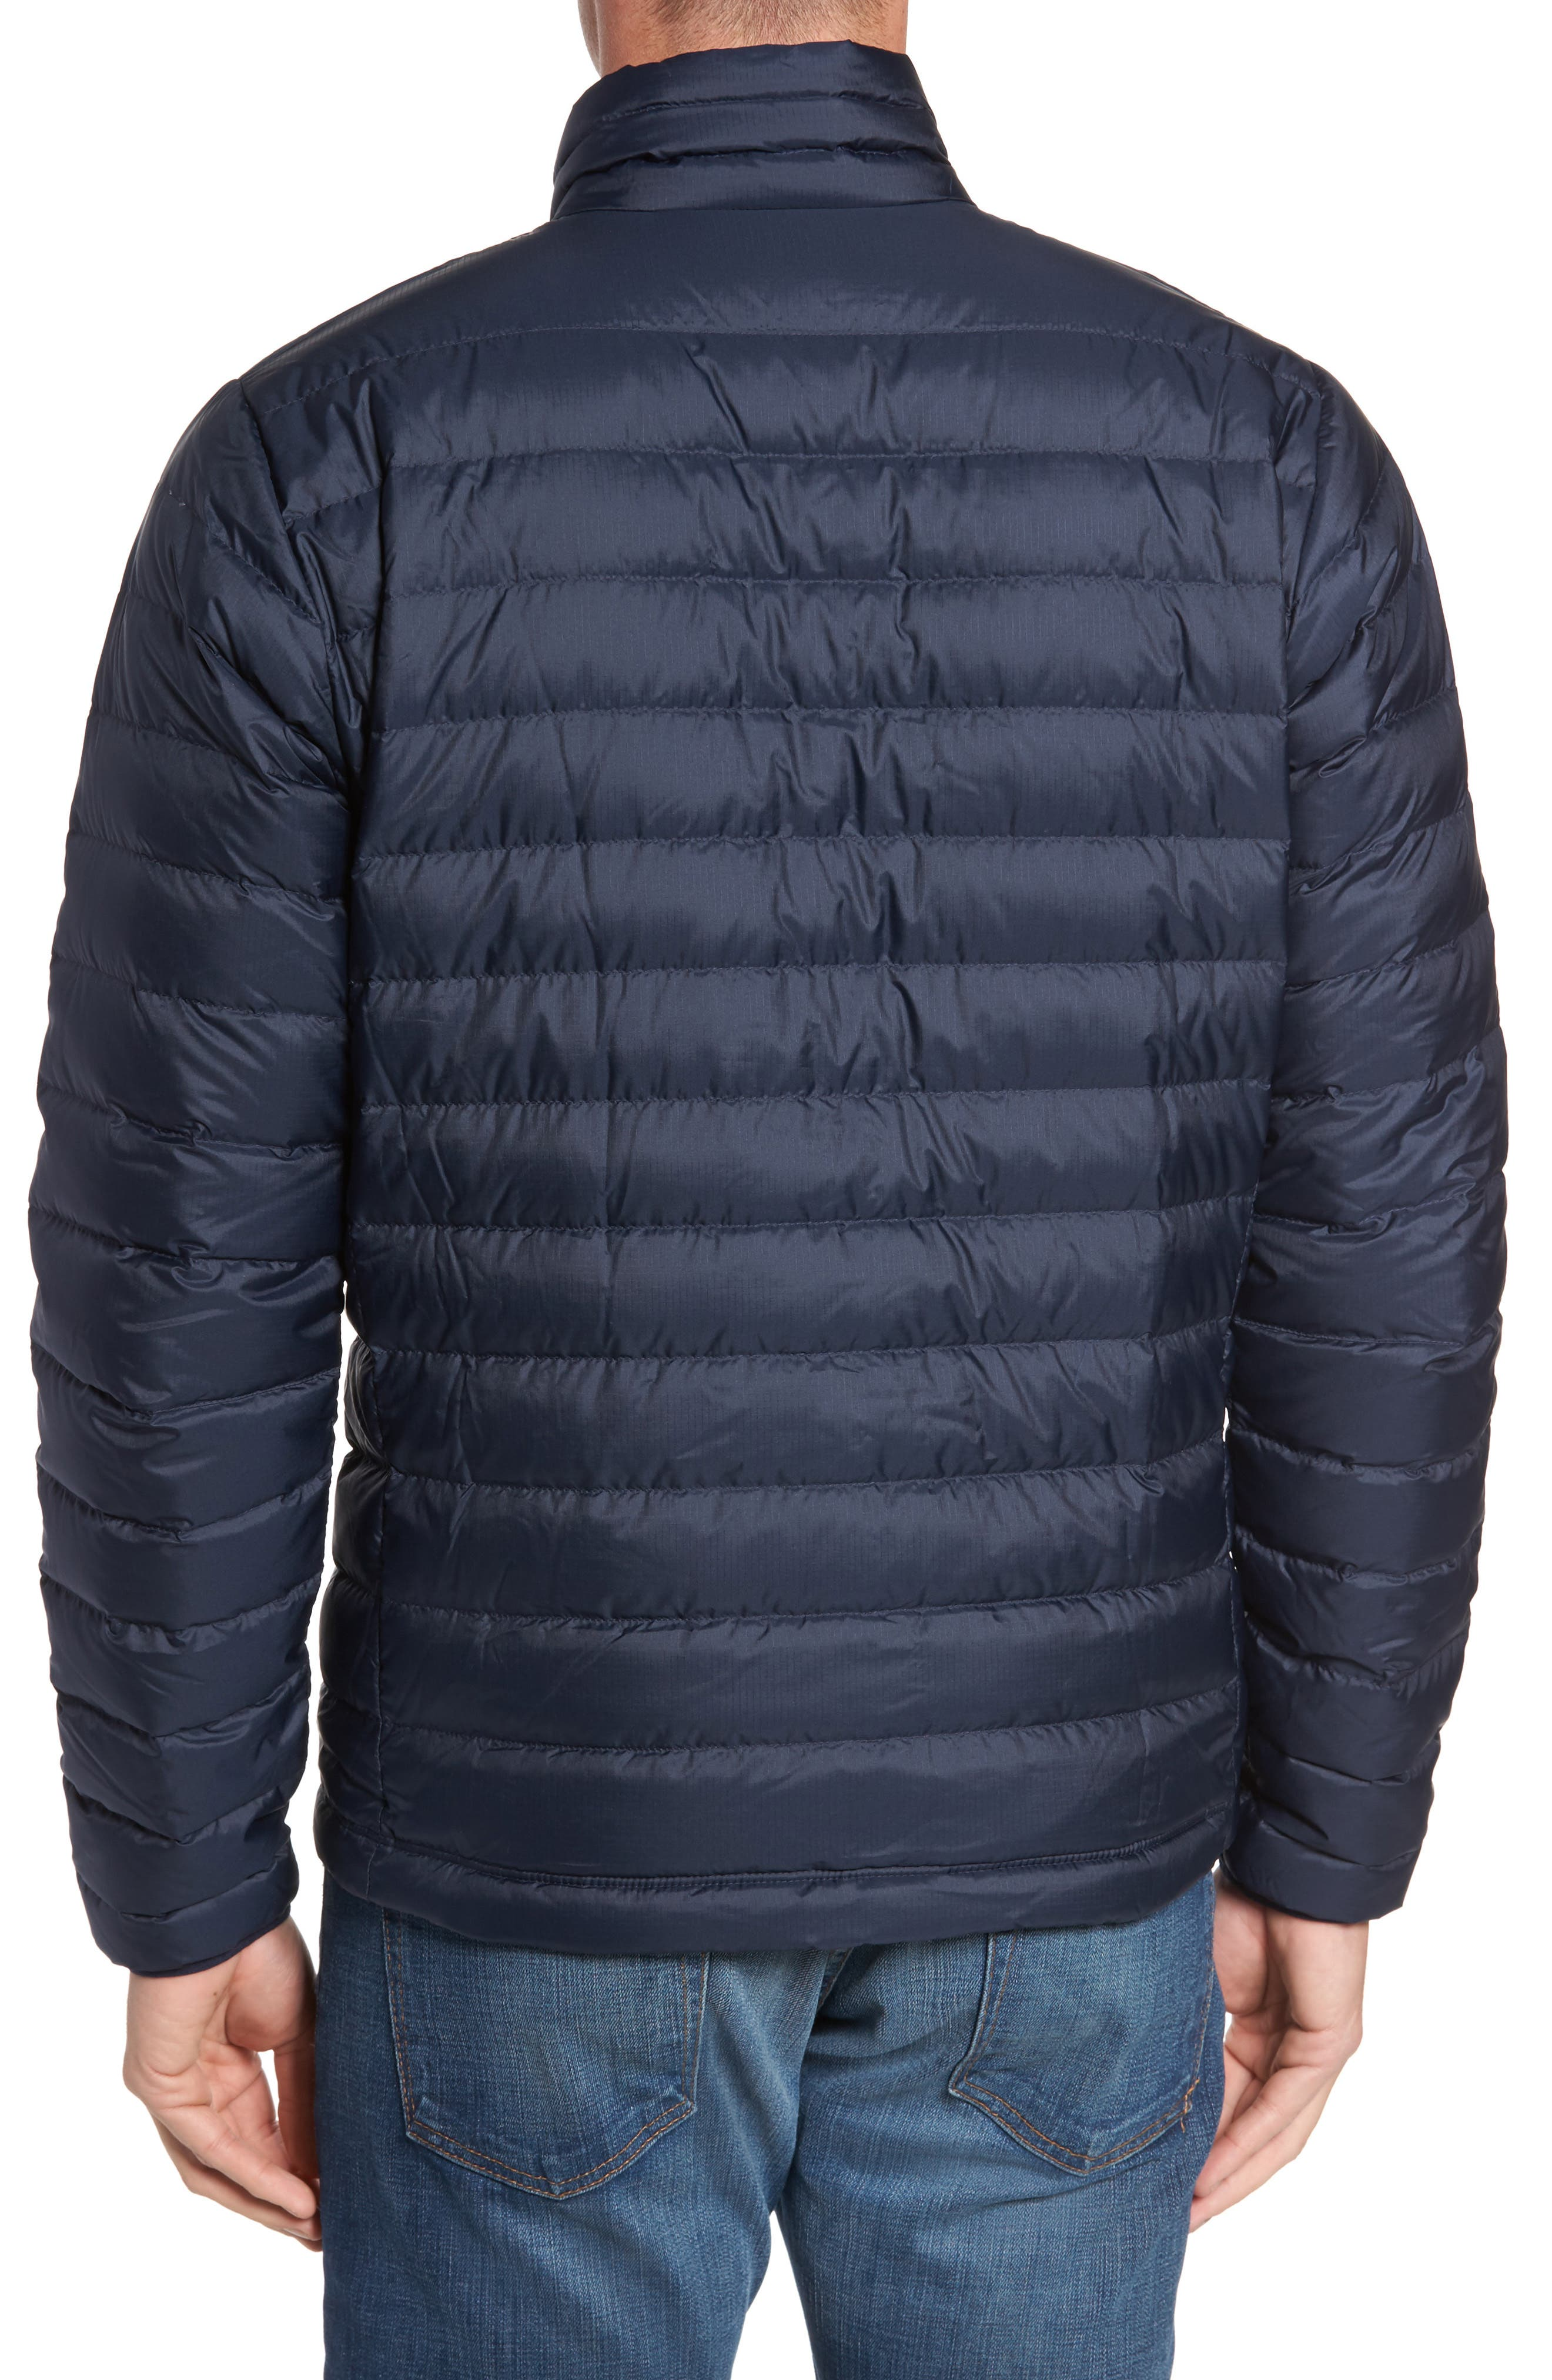 Water Repellent Down Jacket,                             Alternate thumbnail 2, color,                             NAVY BLUE W/ NAVY BLUE